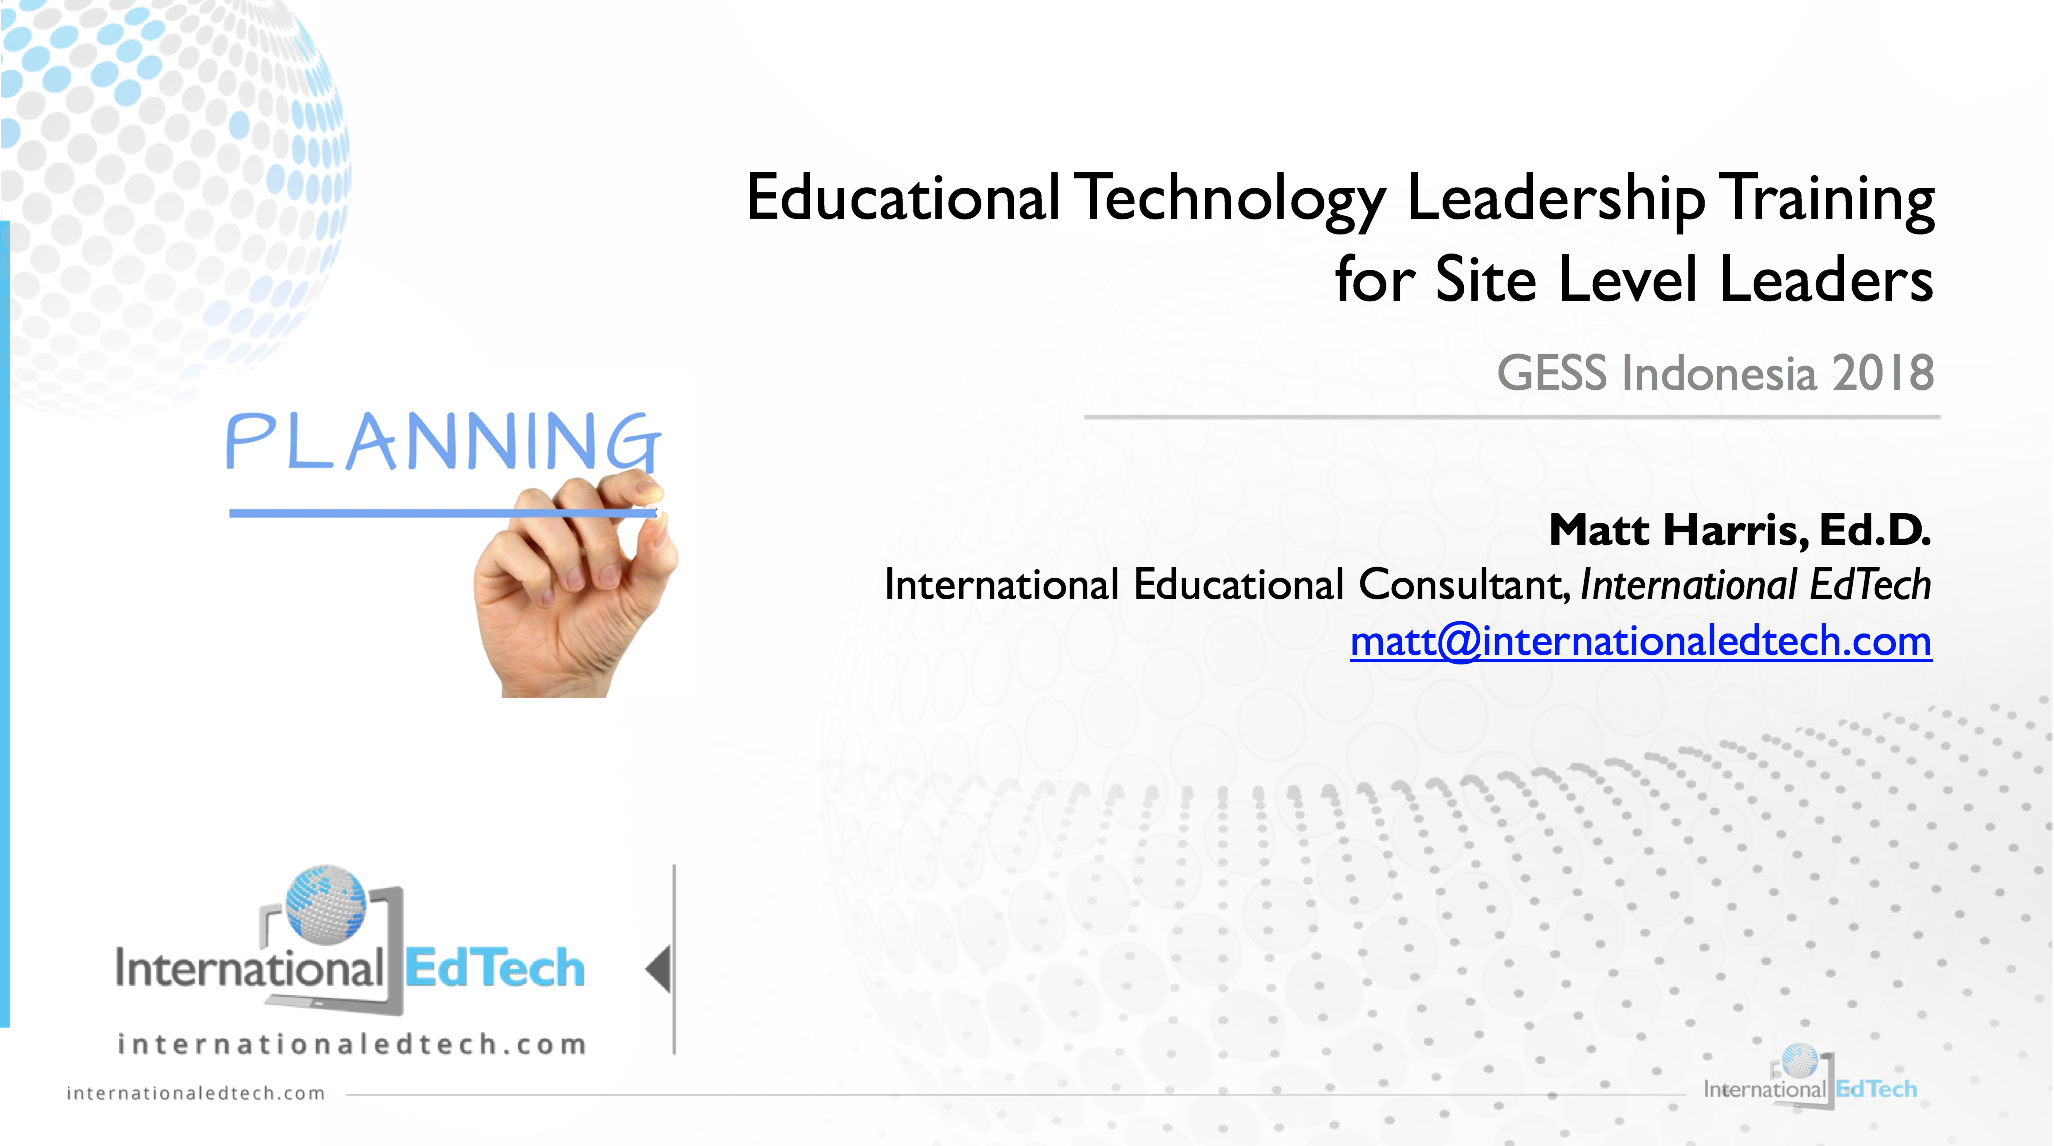 Educational Technology Leadership Training for Site Level Leaders - GESS Indonesia 2018